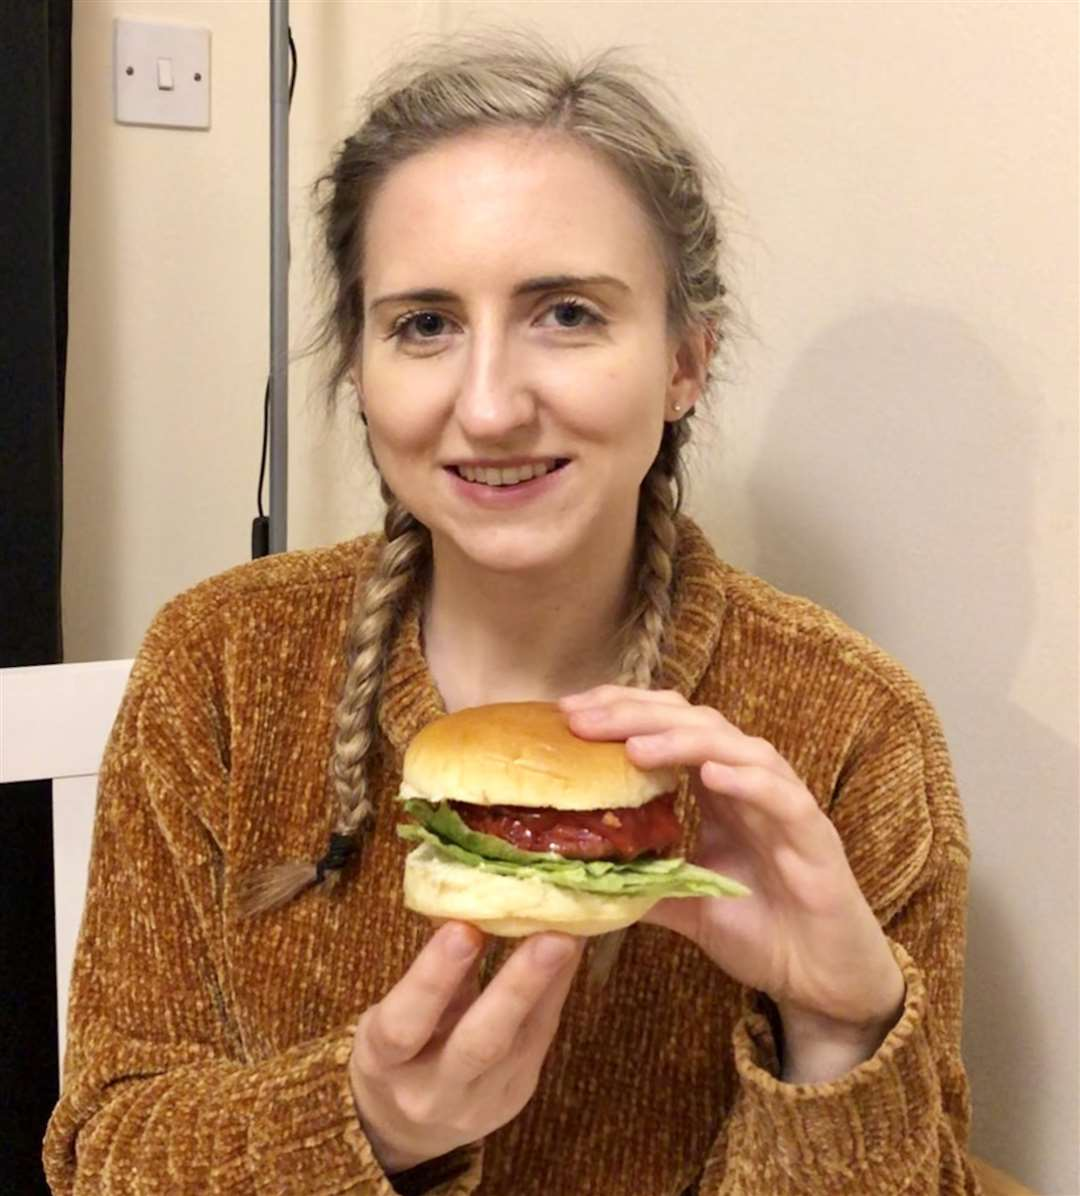 Veggie feature - reporter Rebekah Chilvers with a burger from M&S' Plant Kitchen range. (6355788)